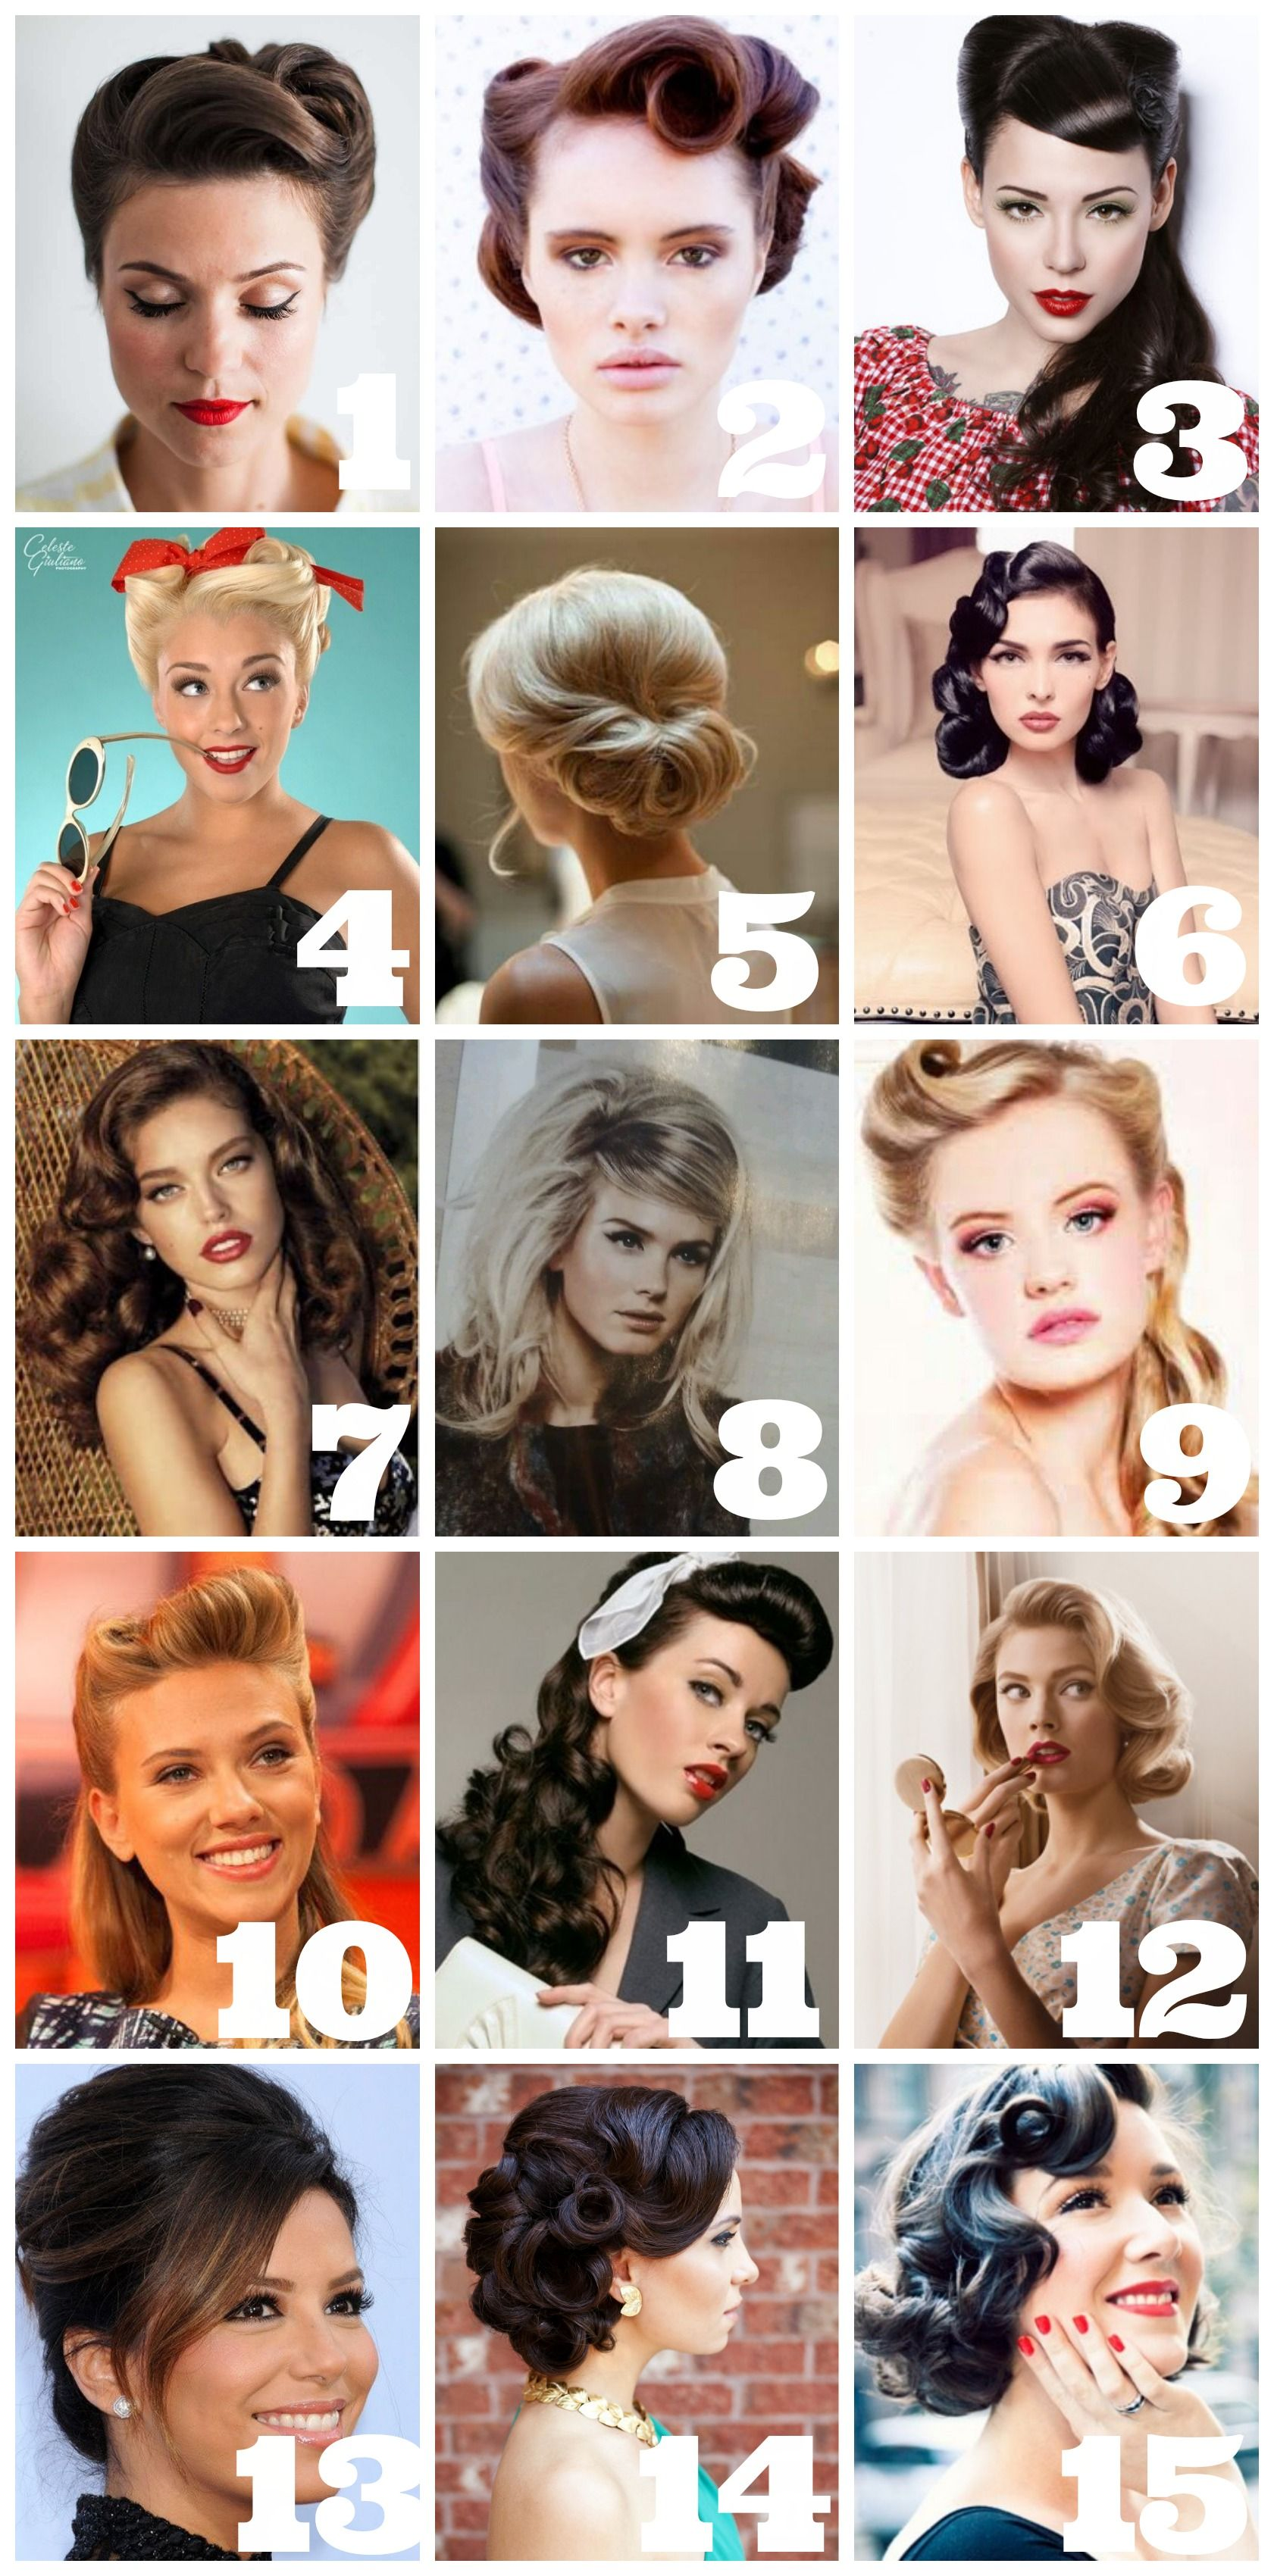 15 Cute Retro Hairstyles Number 4 and 9 are my favs I would wear